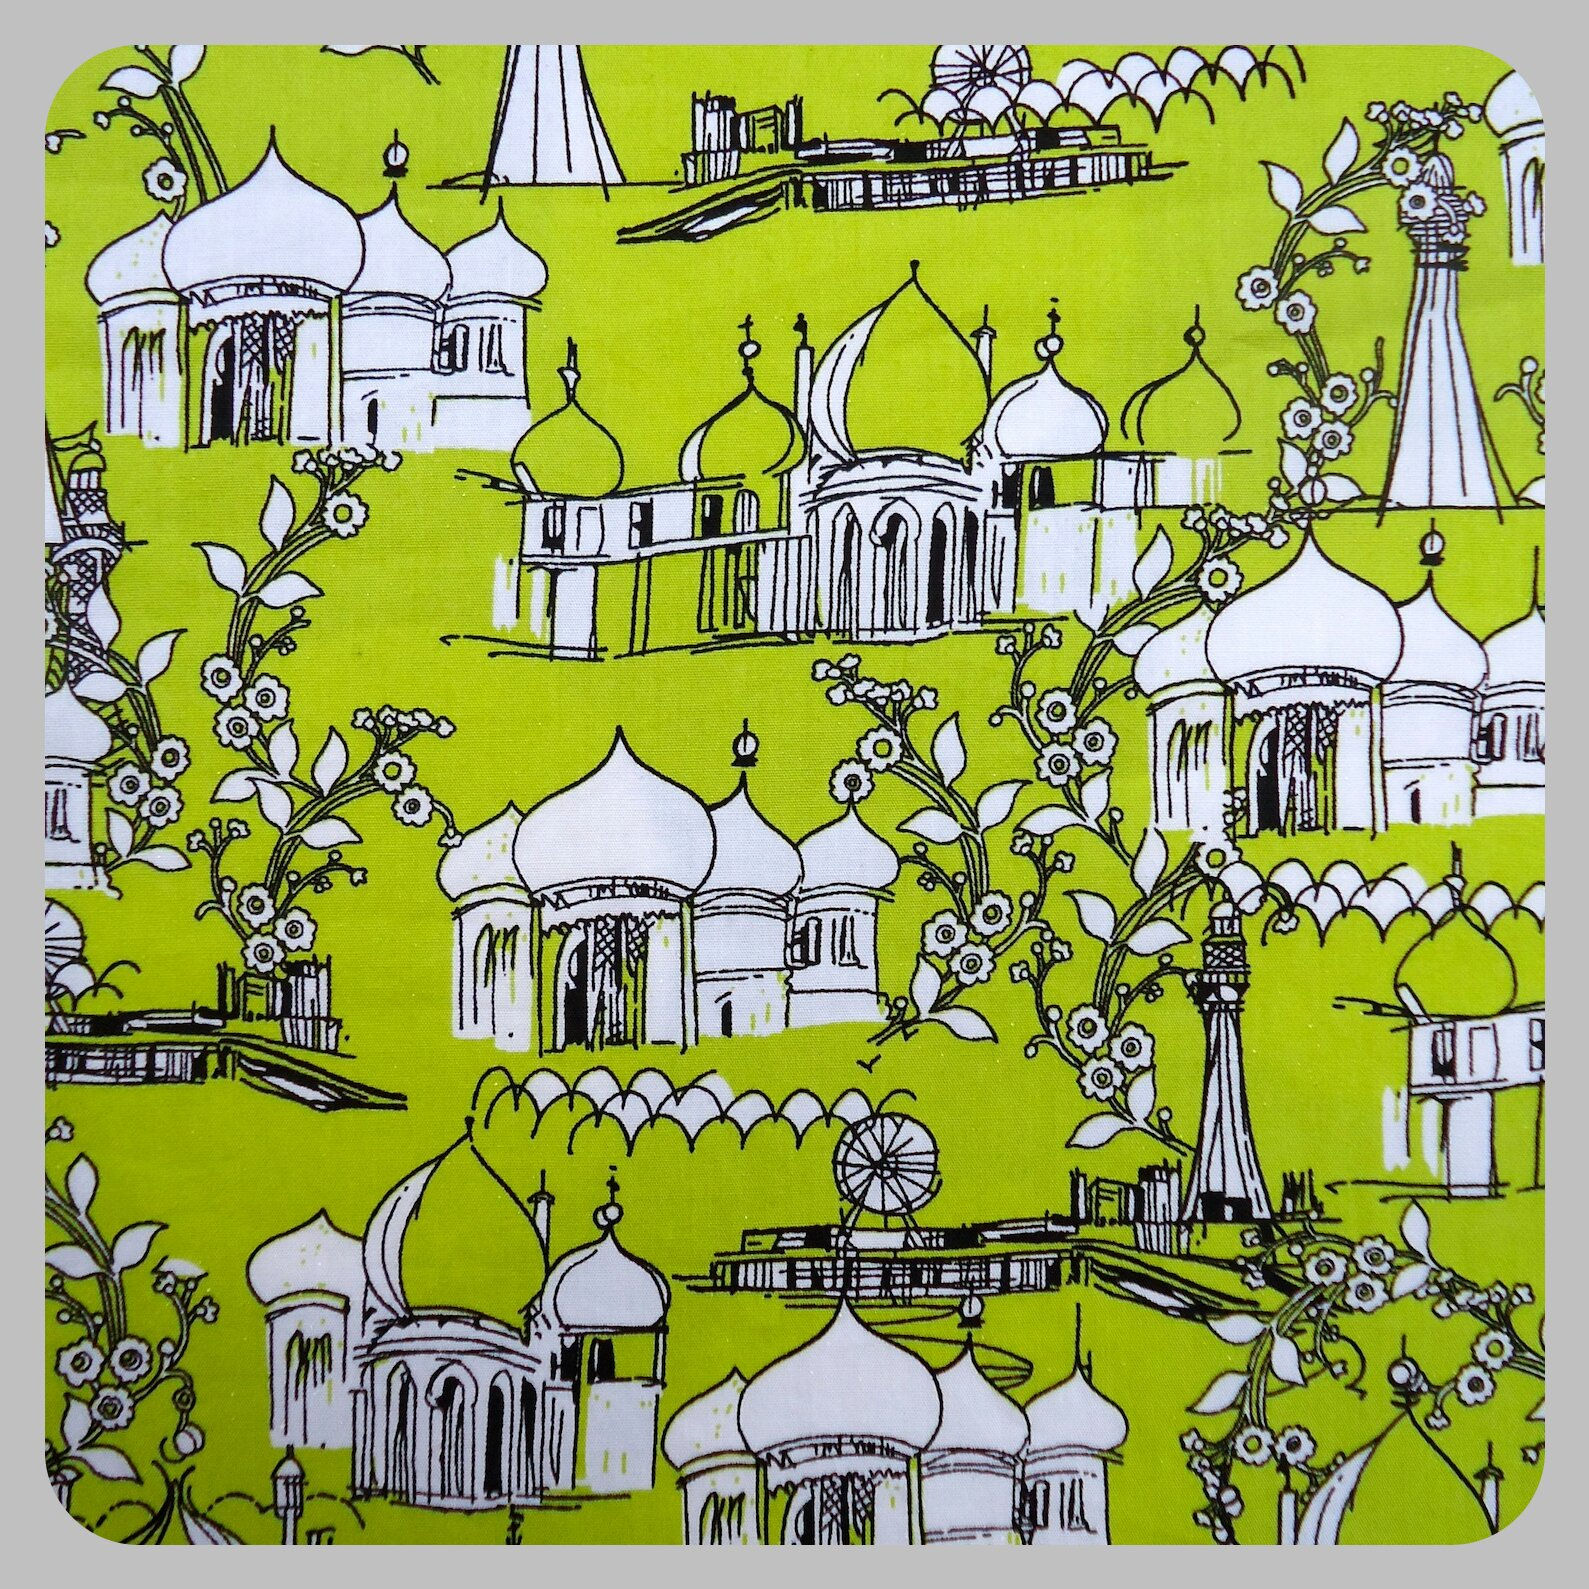 Brighton Pavilion fabric by Inprint at Makower UK